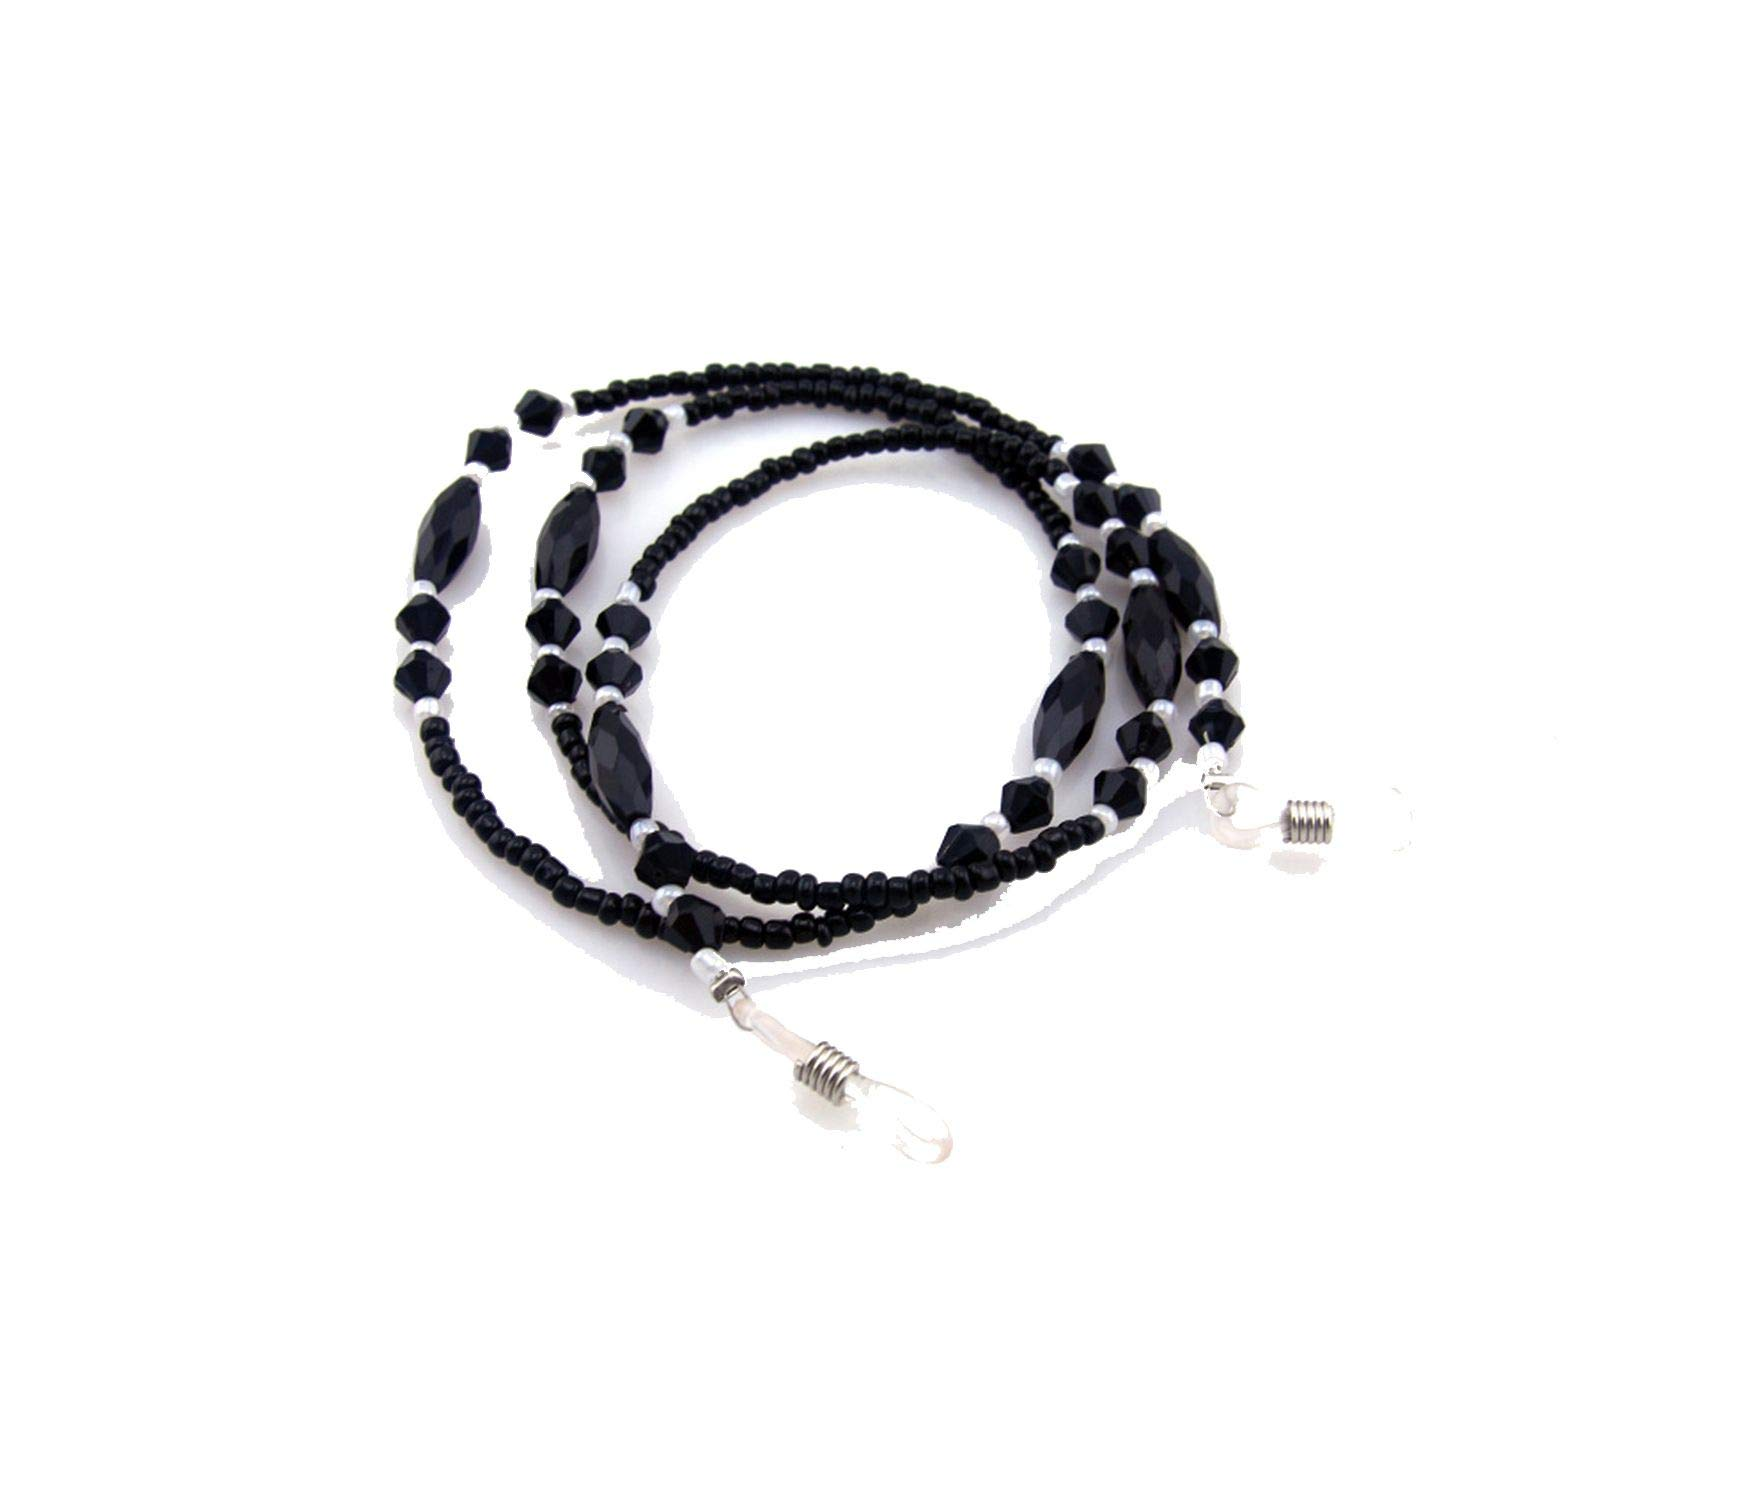 20 Pcs Black Beaded Eyewear Cord Reading Glass Neck Strap Eyeglass Holder Black Cord Glasses Strap Eyewear Accessories by RHYS DOBSON